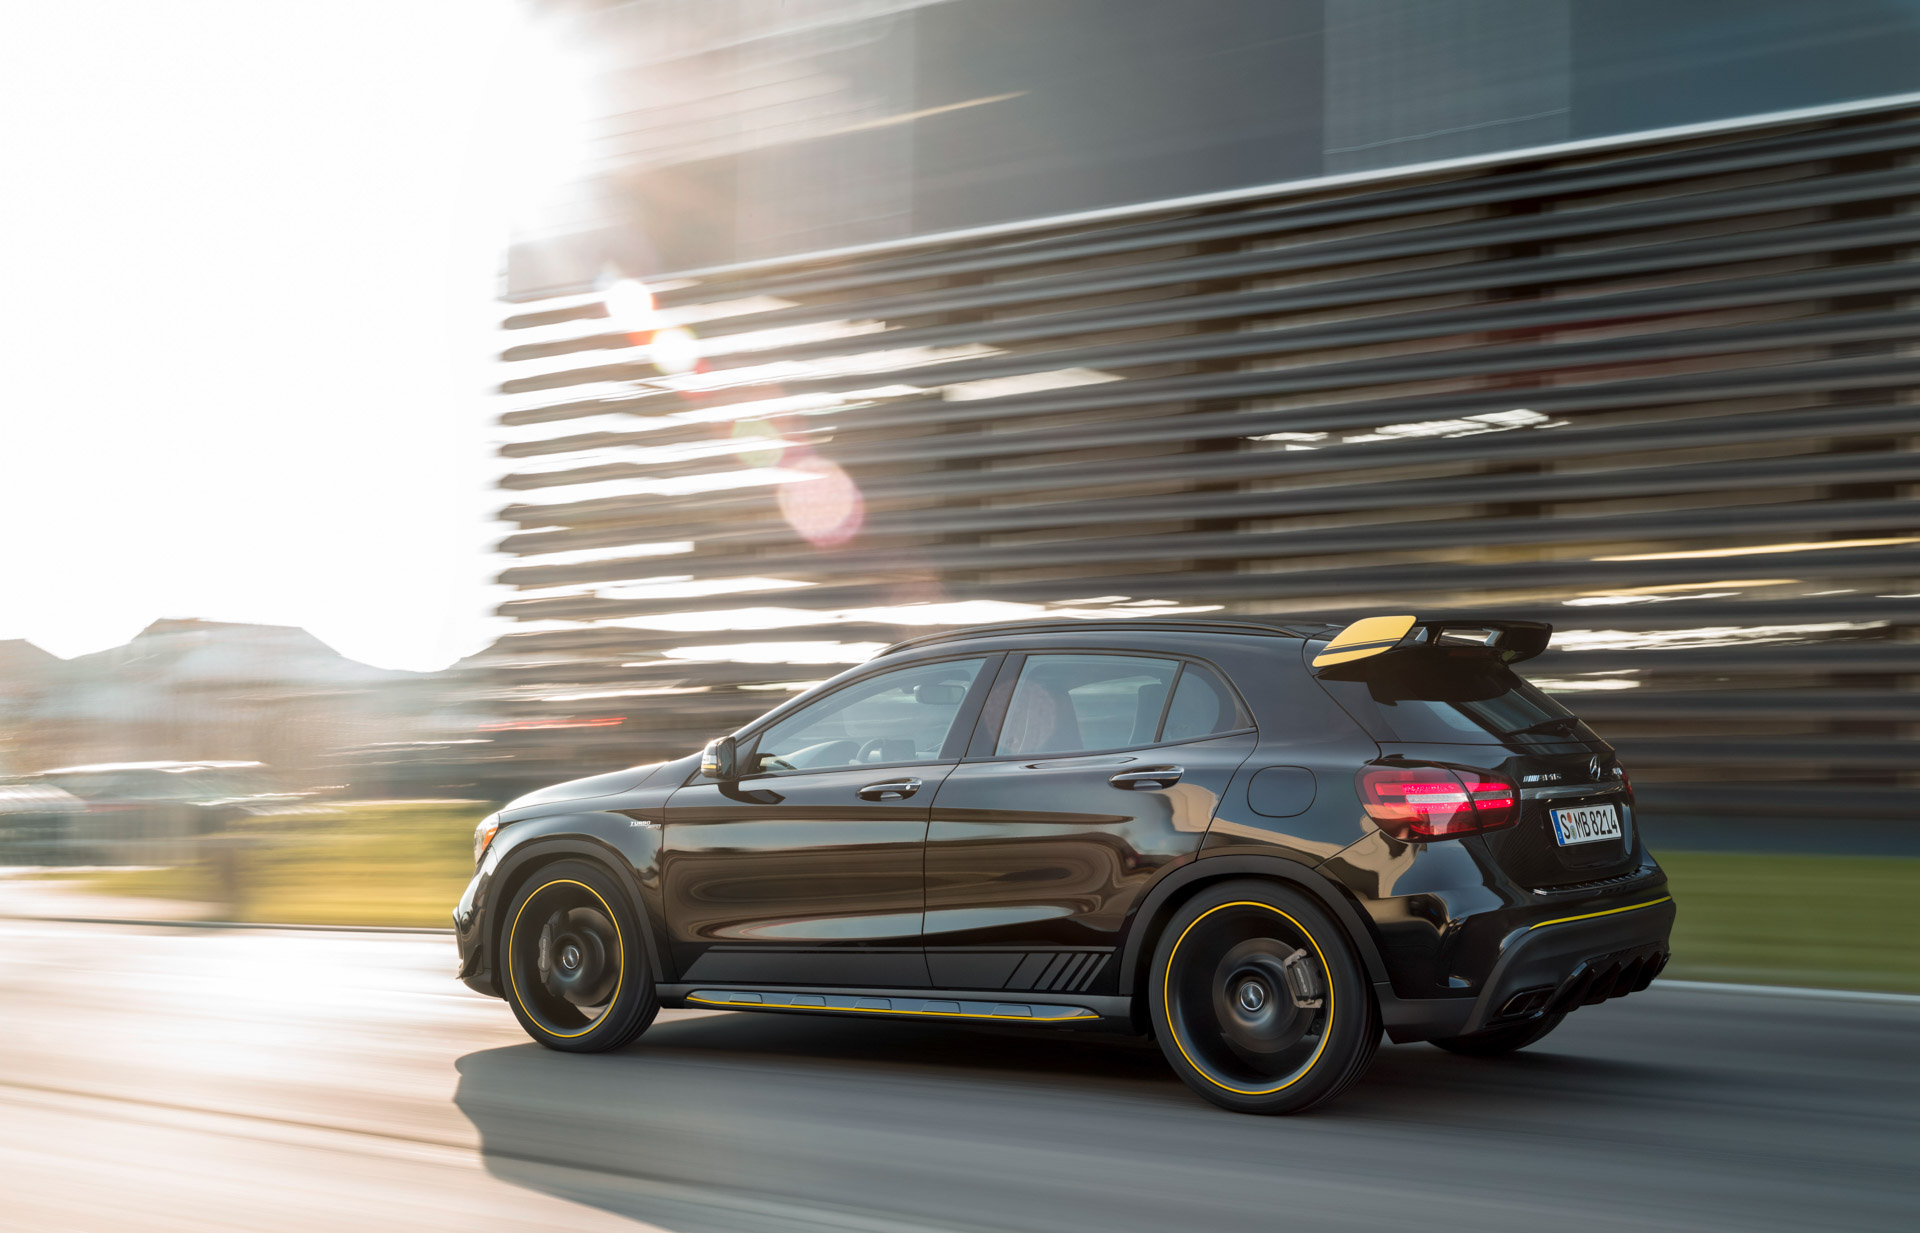 Mercedes-Benz AMG GLA 45 4MATIC Yellow Night Edition, cosmosschwarz, Fahraufnahme ;Kraftstoffverbrauch kombiniert: 7,4 l/100 km, CO2-Emissionen kombiniert: 172 g/km Mercedes-Benz AMG GLA 45 4MATIC Yellow Night Edition, cosmos black, driving shot; Fuel consumption combined:  7.4 l/100km; Combined CO2 emissions: 172 g/km